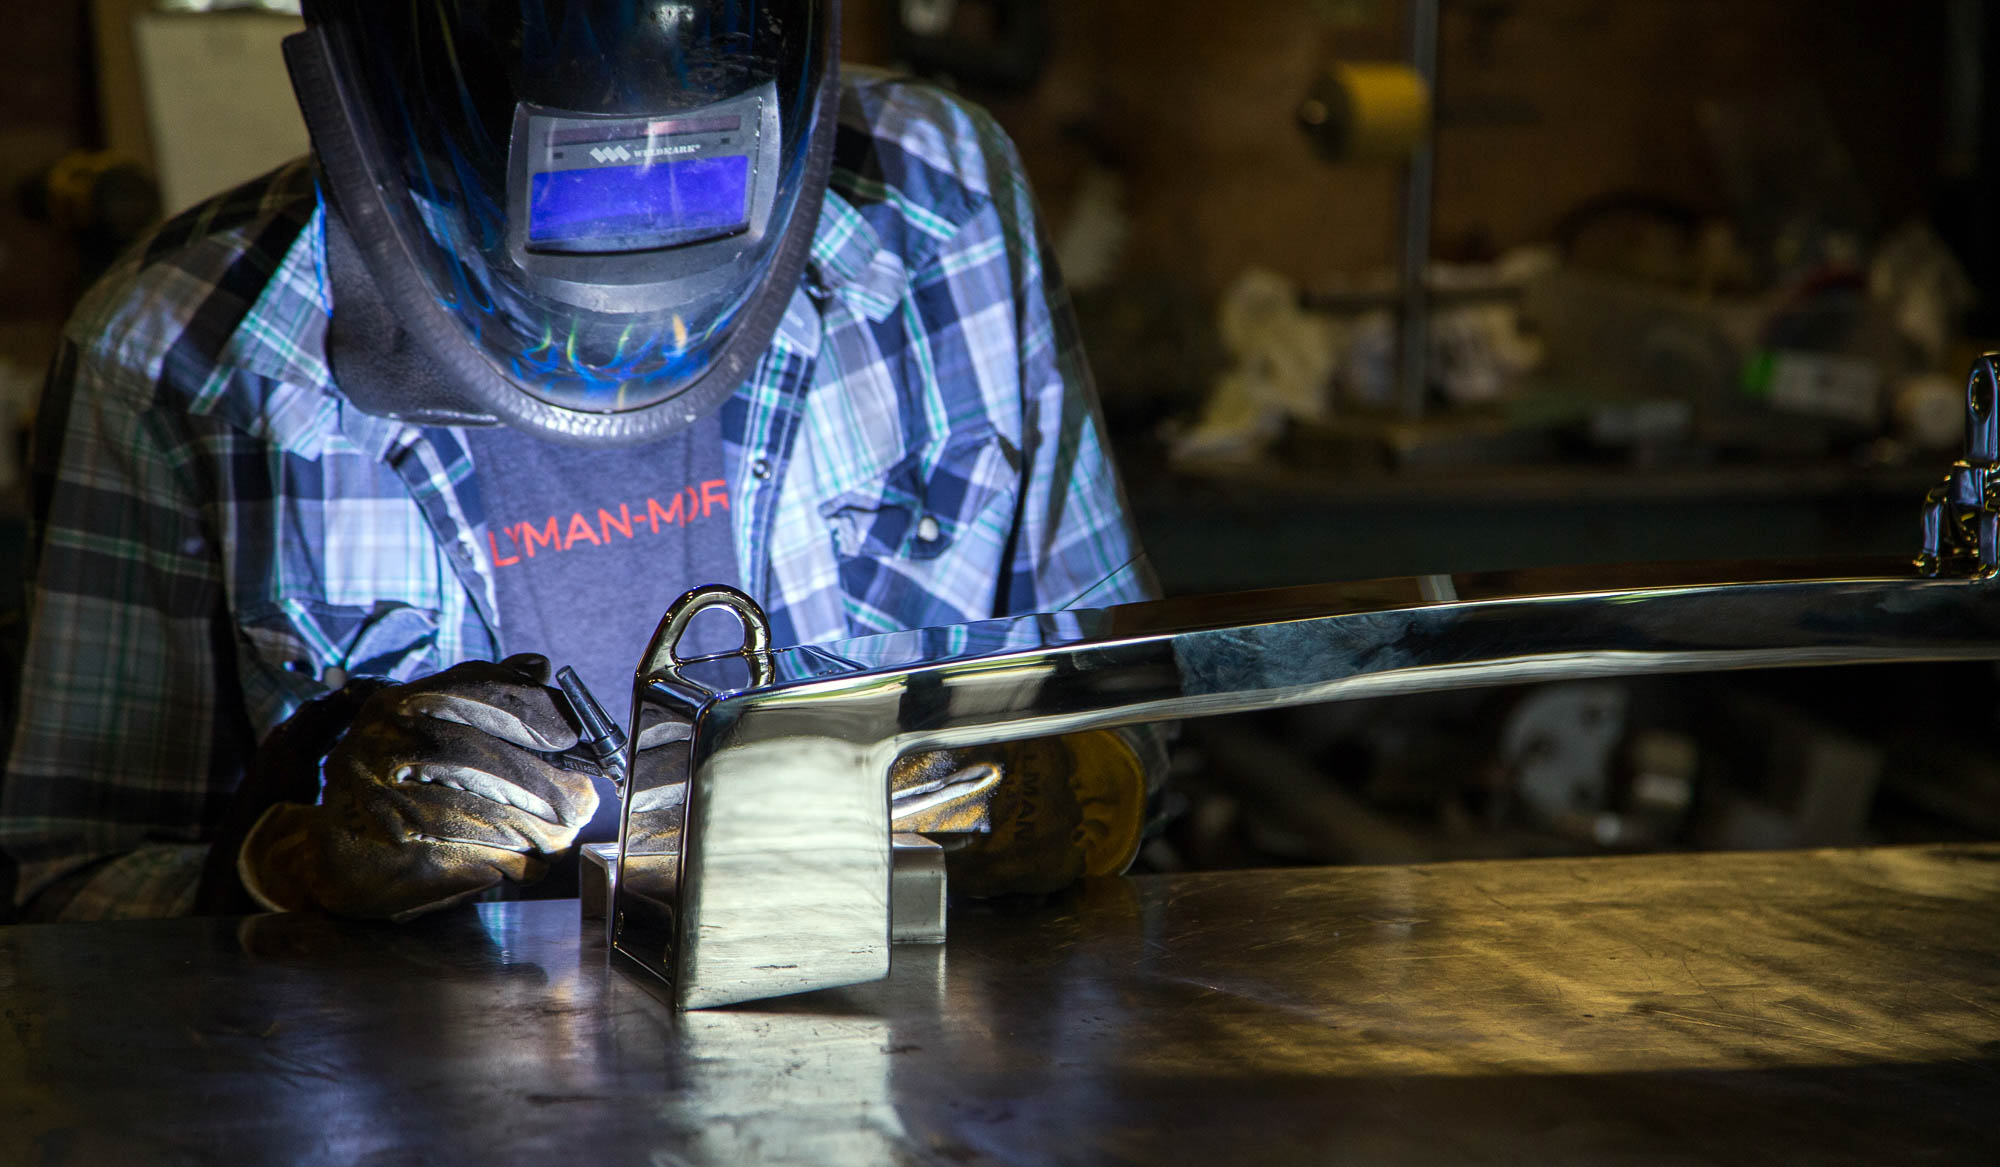 Lyman-Morse Fabrication, world-class expertise in metal work of all types